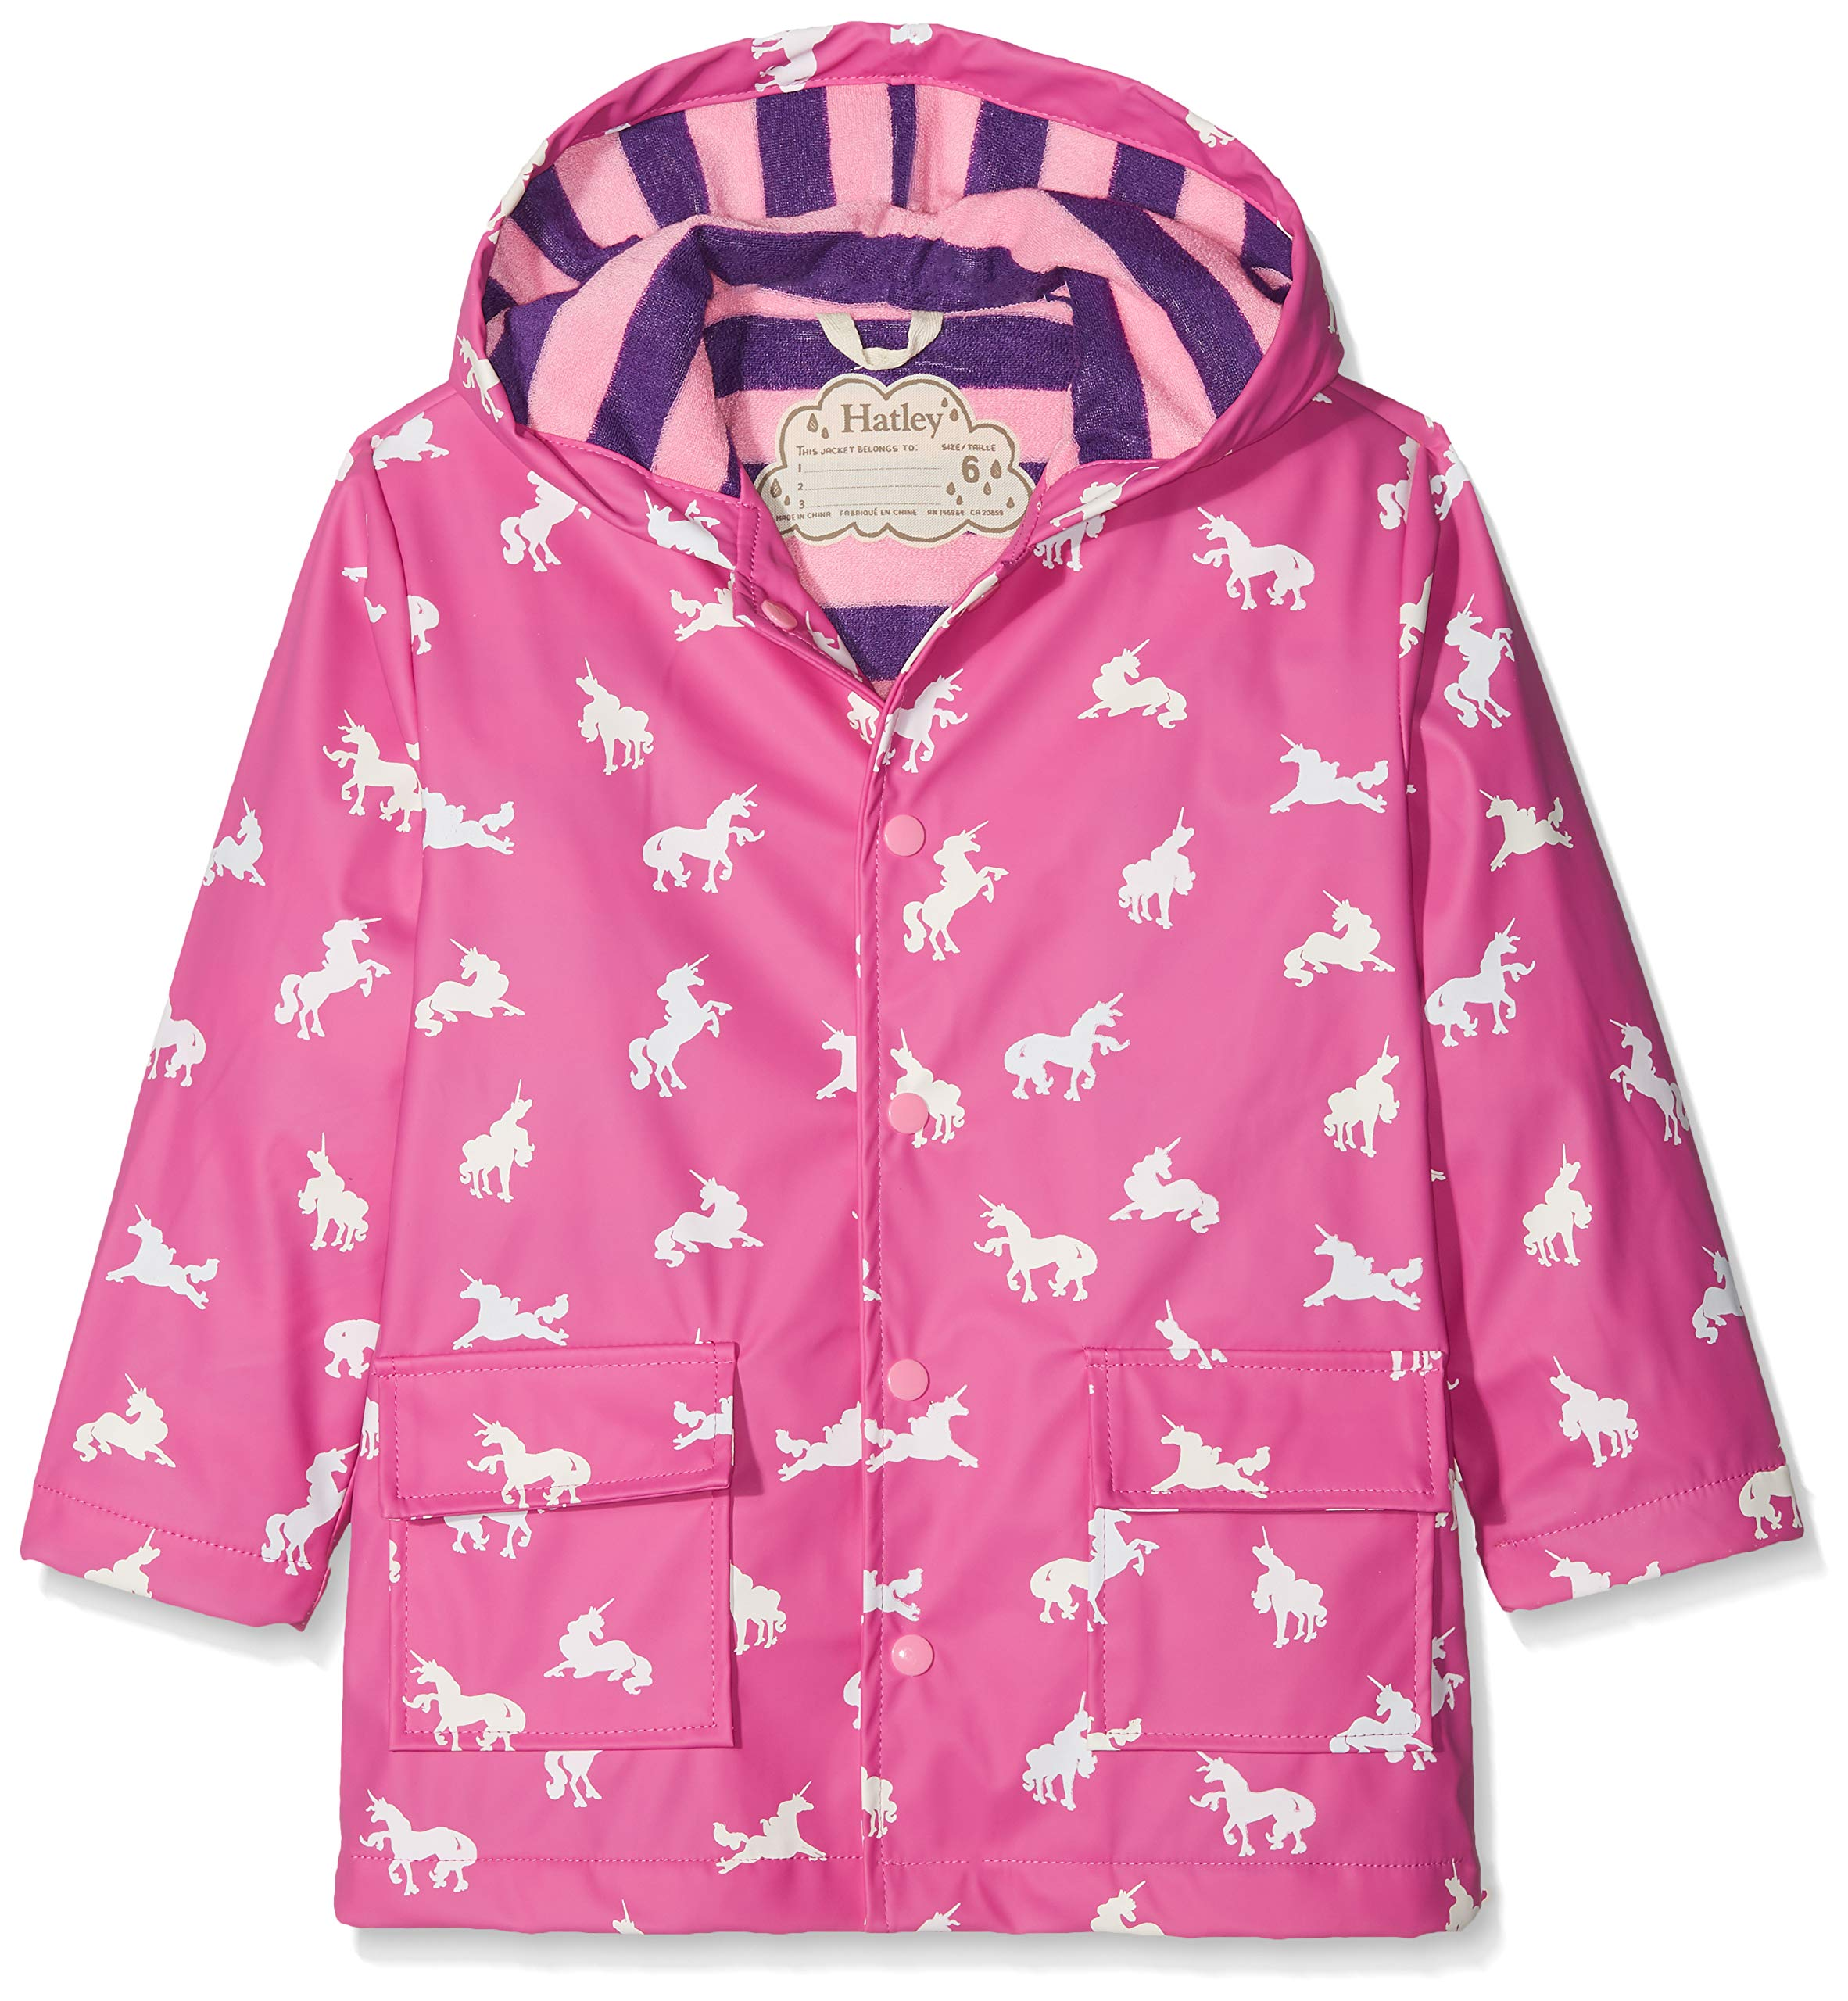 Hatley Girls' Big Printed Raincoats, Colour Changing Unicorn Silhouettes, 8